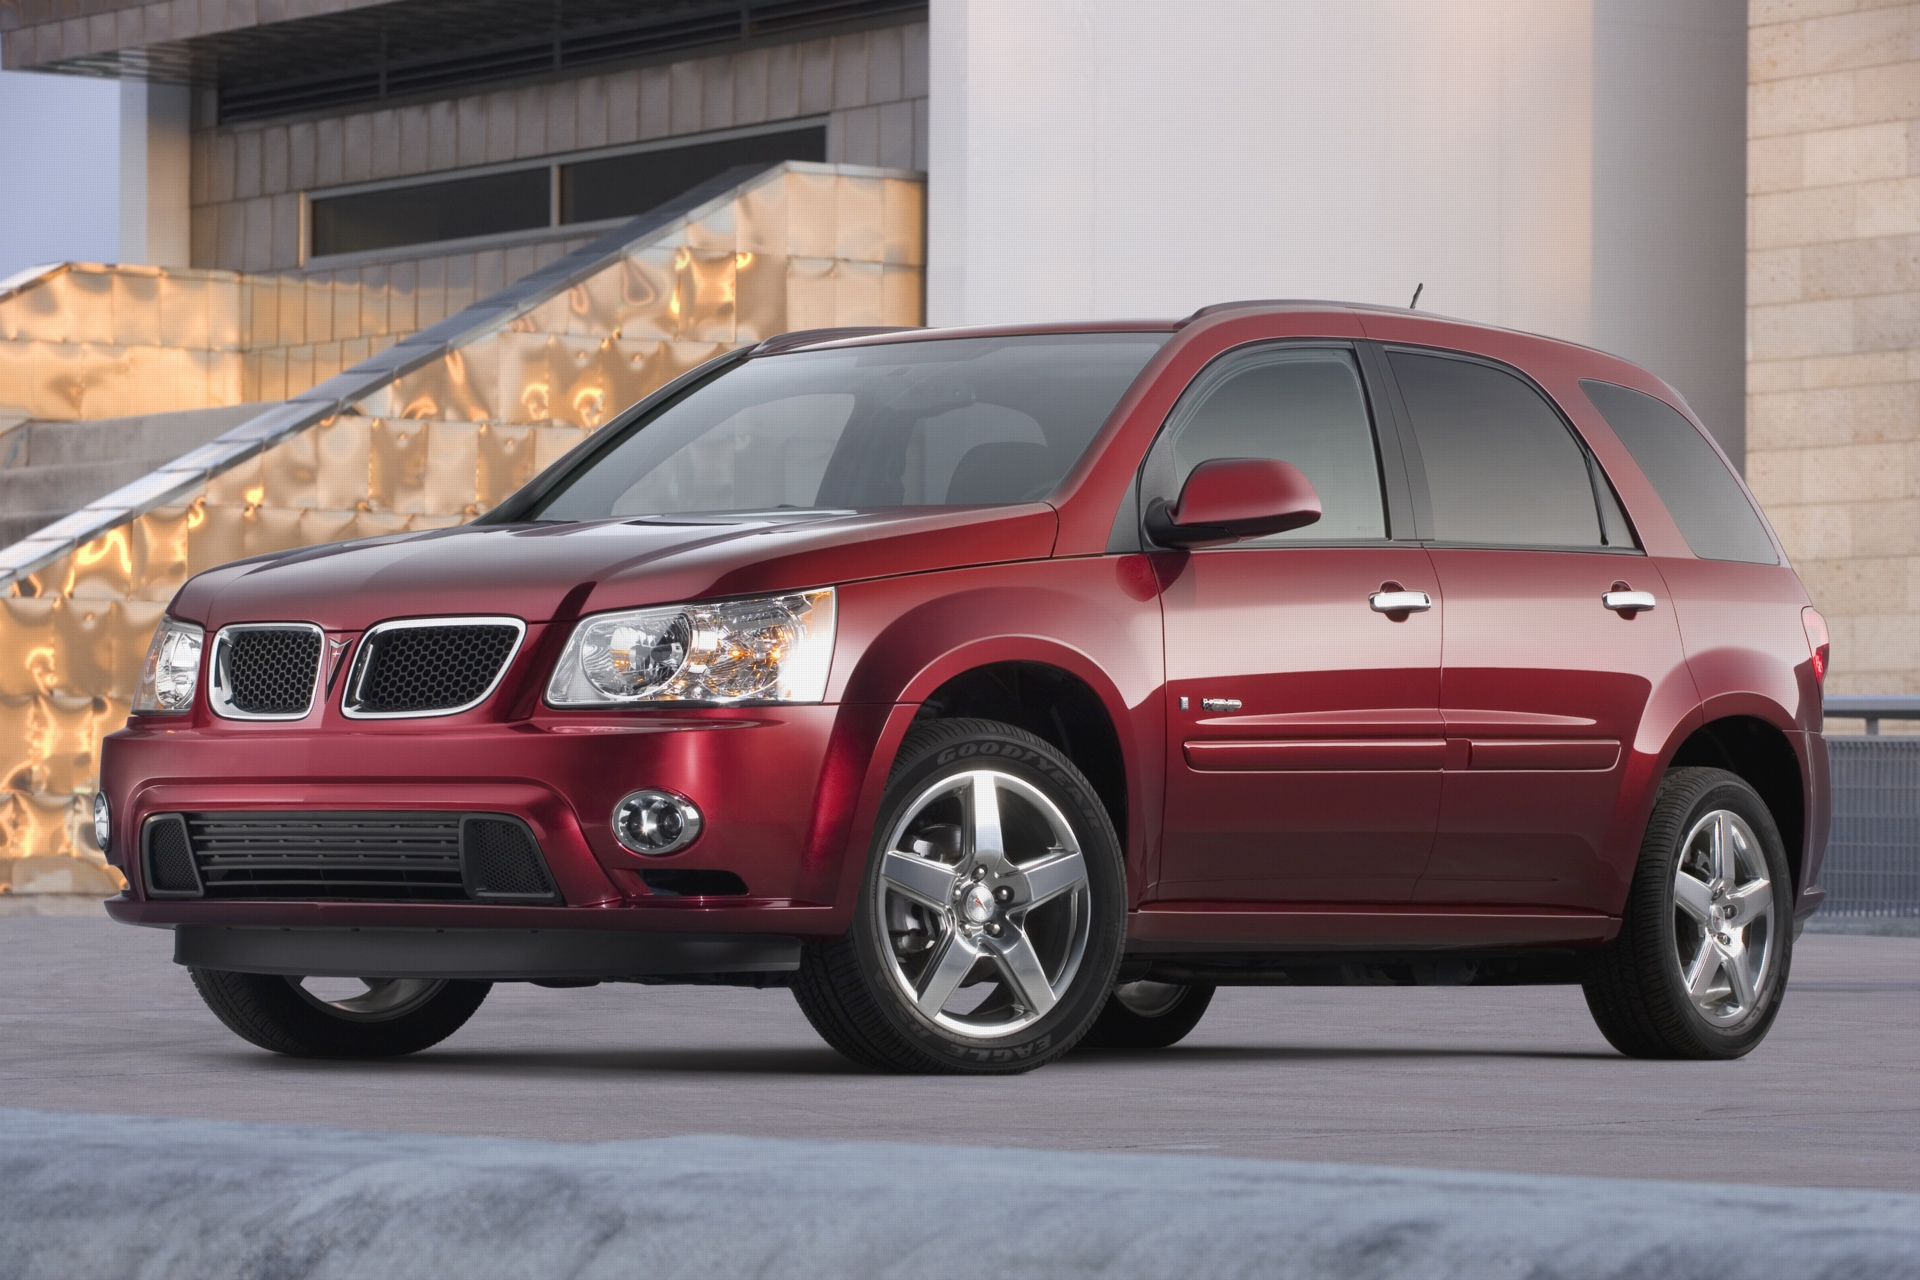 2008 Pontiac Torrent GXP News and Information ...